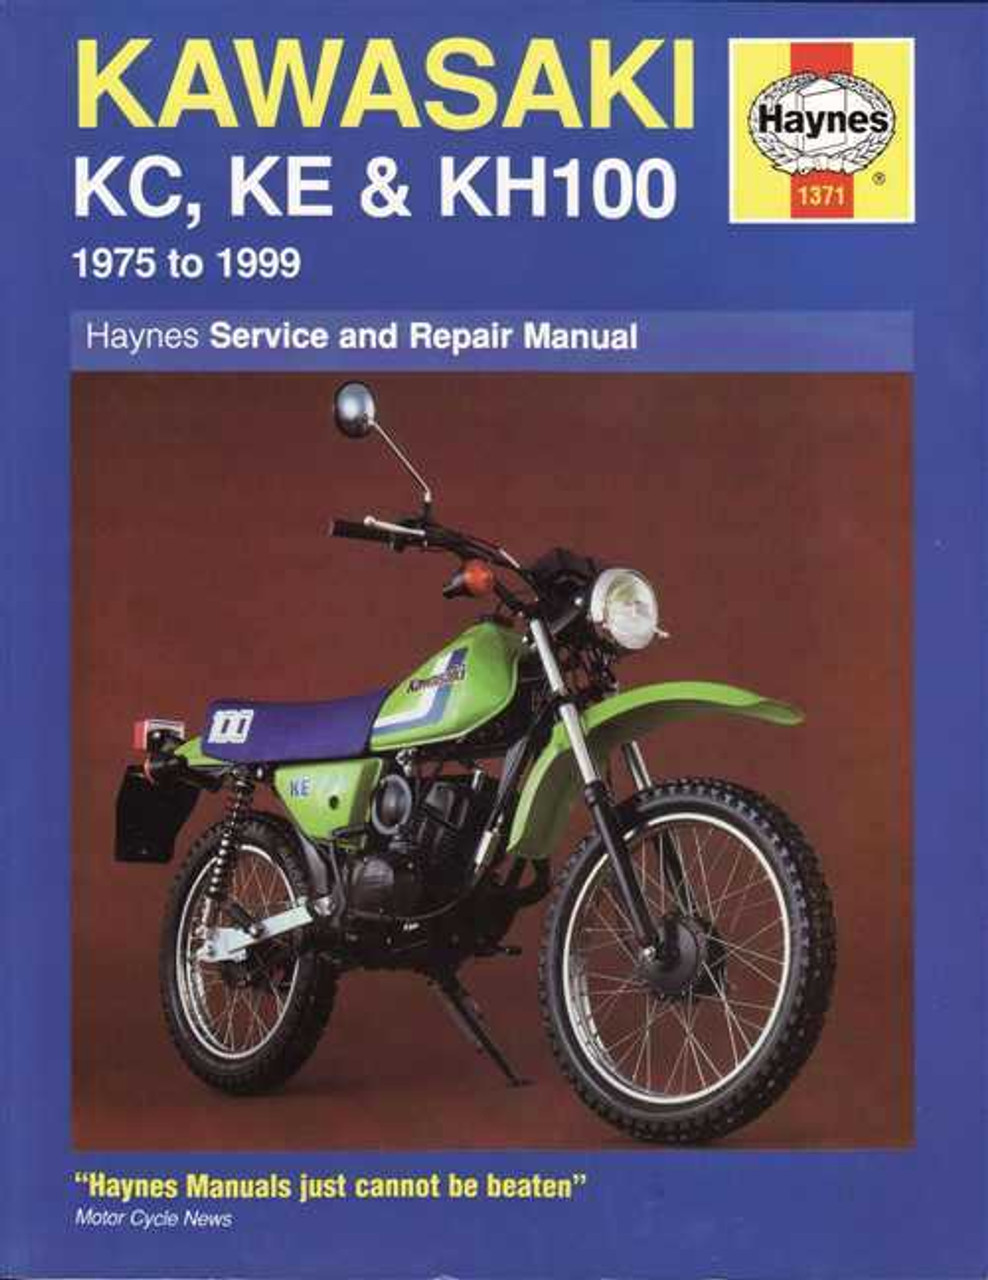 Manual for 1999 kawasaki zx600 ebook ebook tempower us array kawasaki manuals rh kawasaki manuals tempower us fandeluxe Images